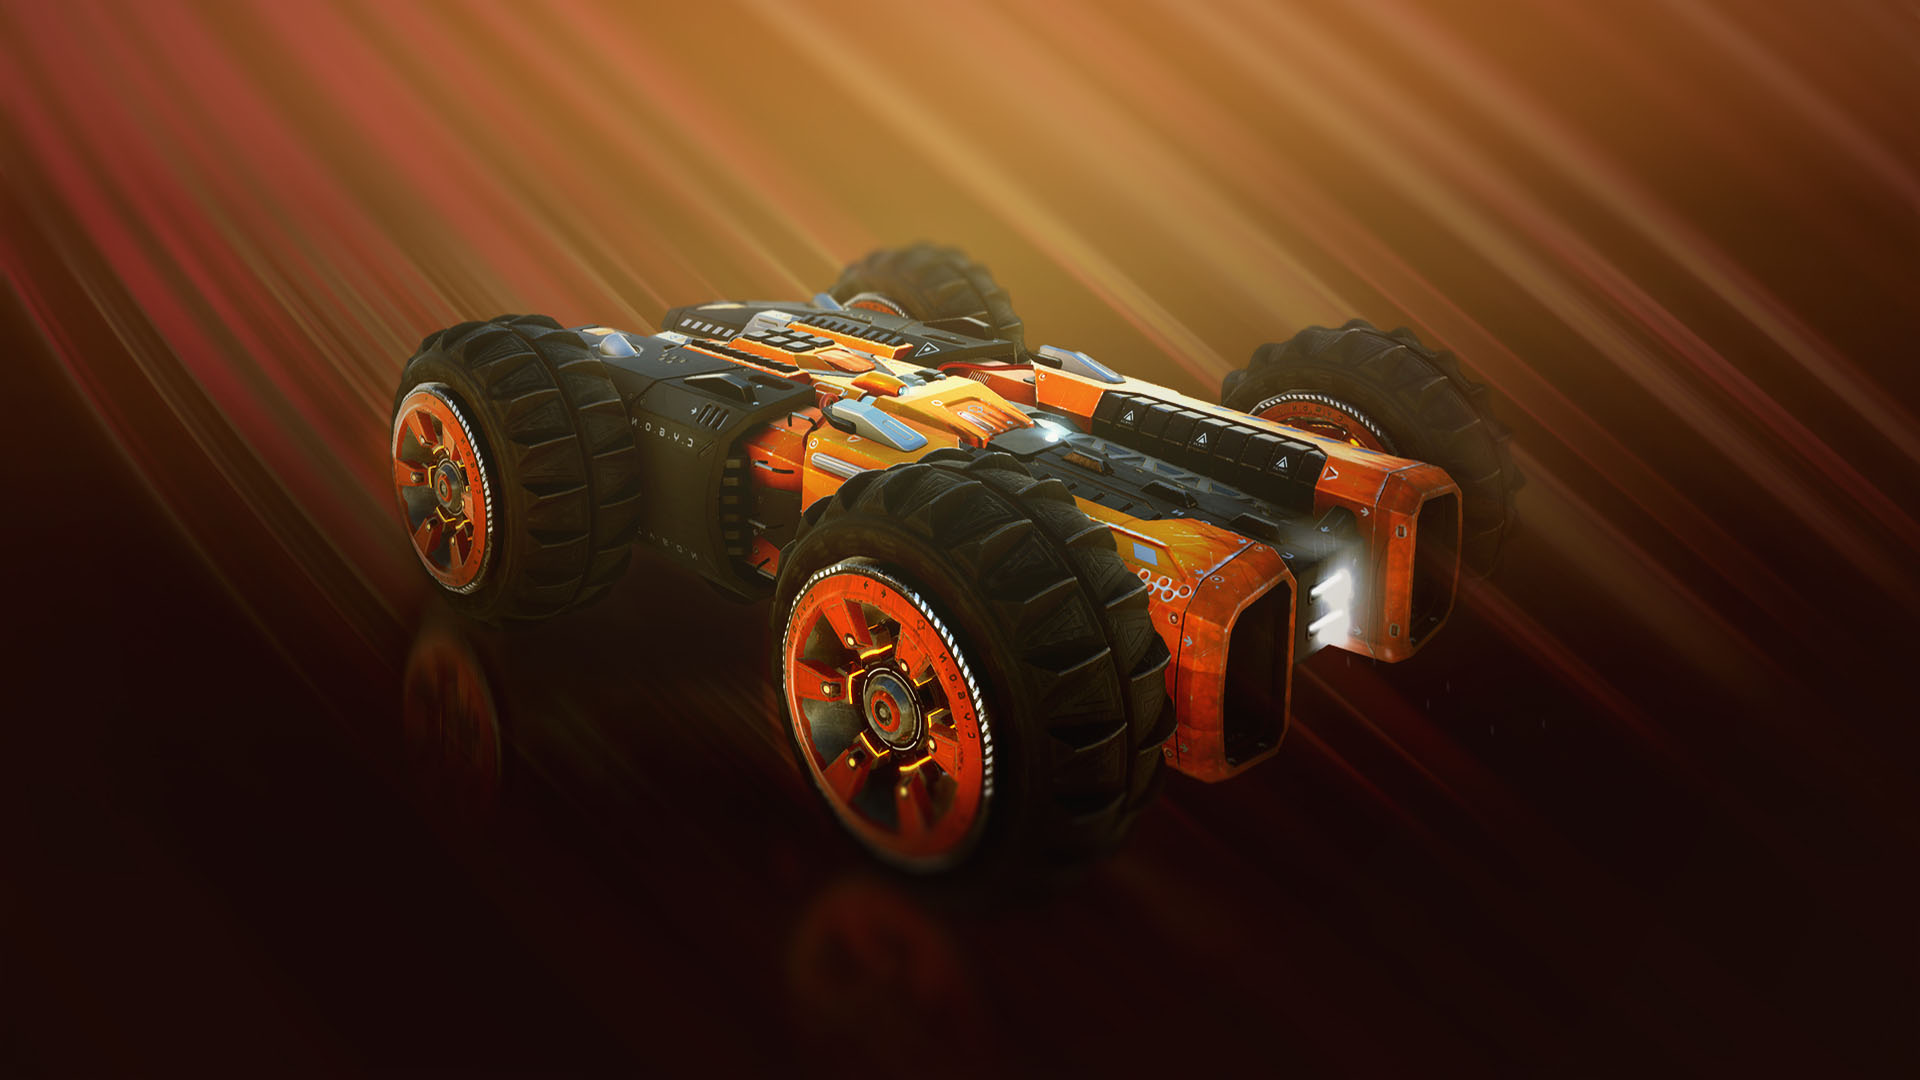 Eversor - Stacked with armour and speed, the Eversor is a fierce competitor.